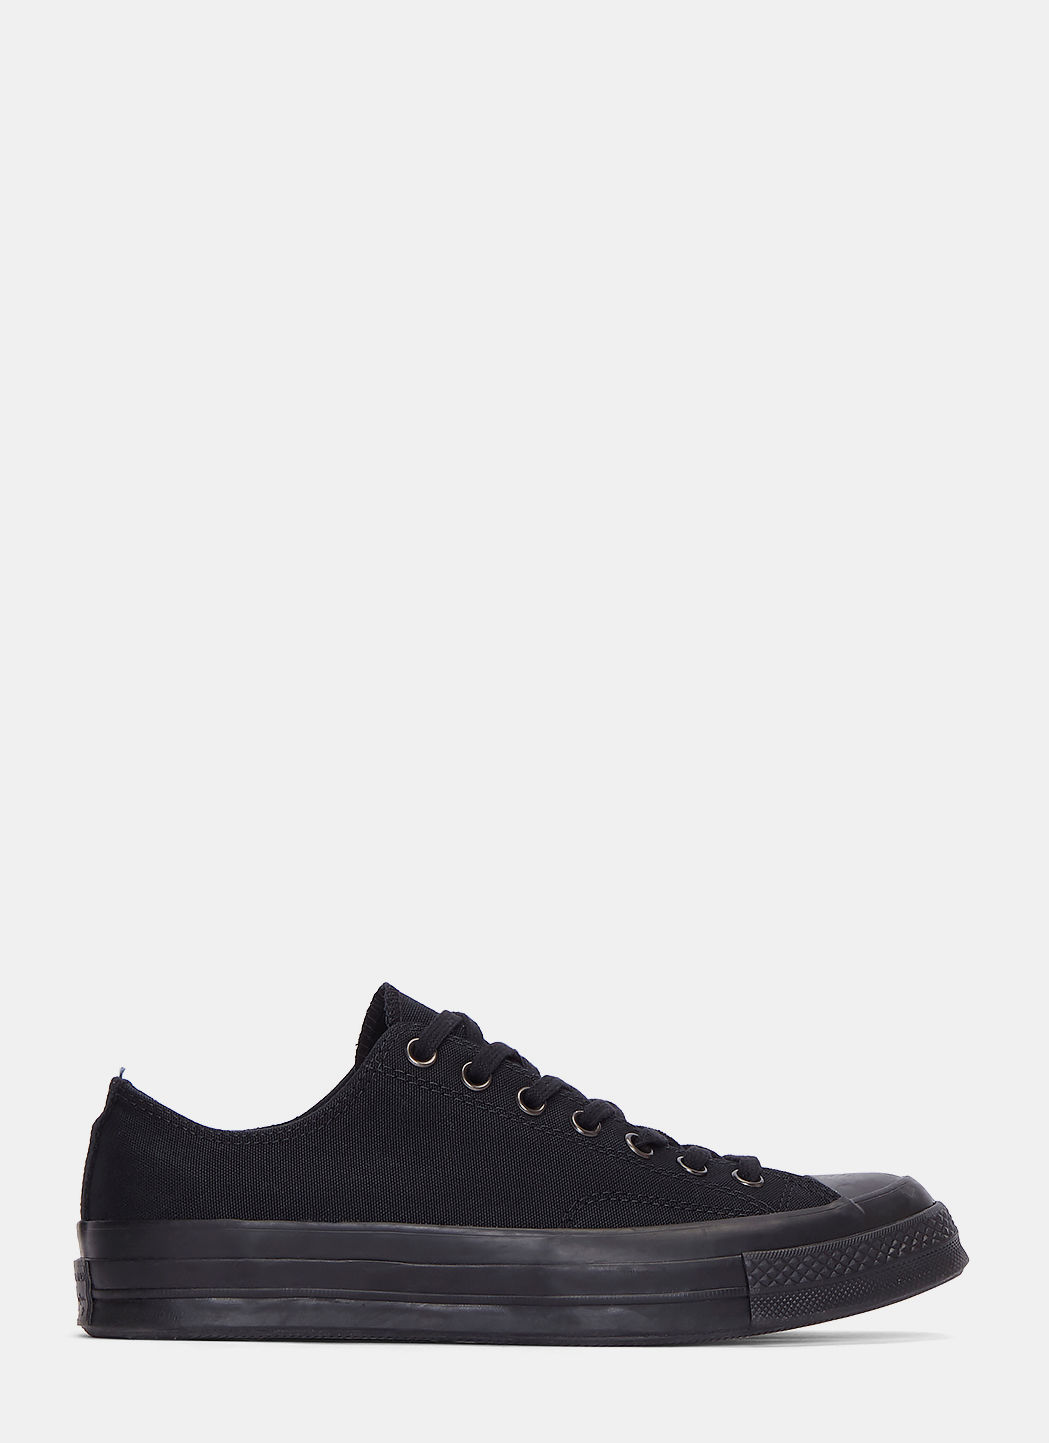 Women'S Chuck Taylor 1970S All Star Low-Top Sneakers In Black in Black Monochrome